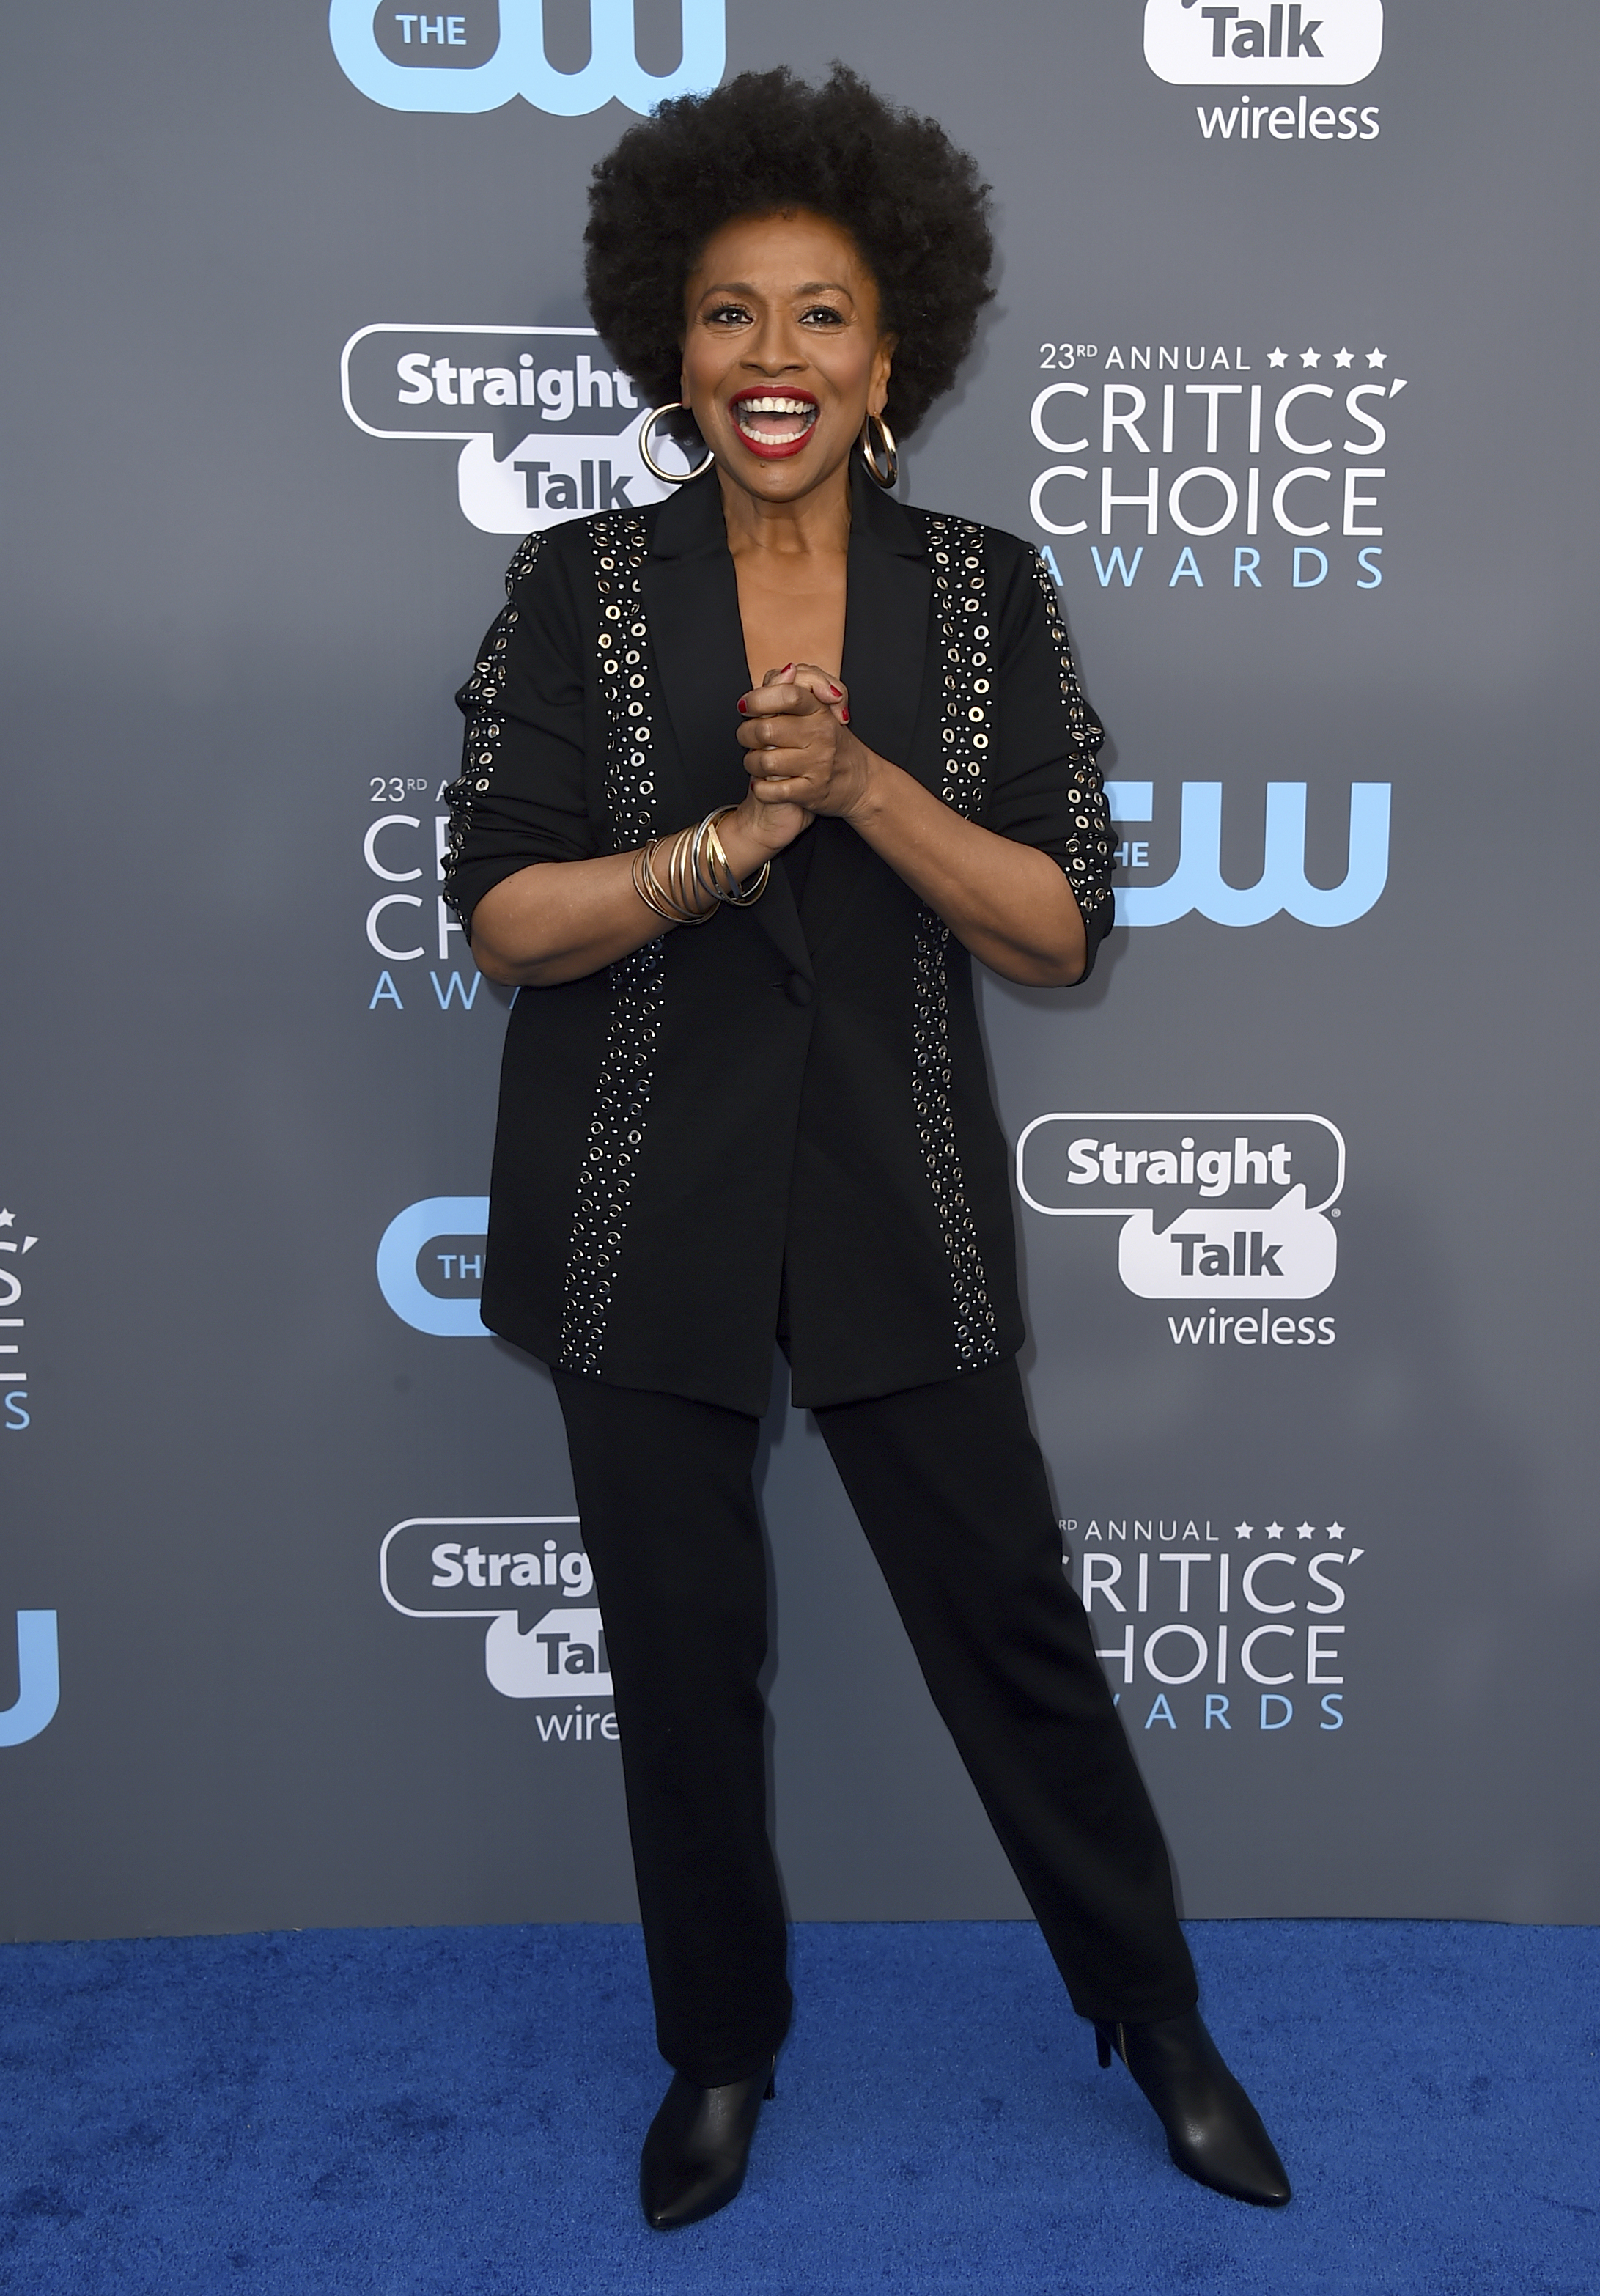 <div class='meta'><div class='origin-logo' data-origin='AP'></div><span class='caption-text' data-credit='Jordan Strauss/Invision/AP'>Jenifer Lewis arrives at the 23rd annual Critics' Choice Awards at the Barker Hangar on Thursday, Jan. 11, 2018, in Santa Monica, Calif.</span></div>